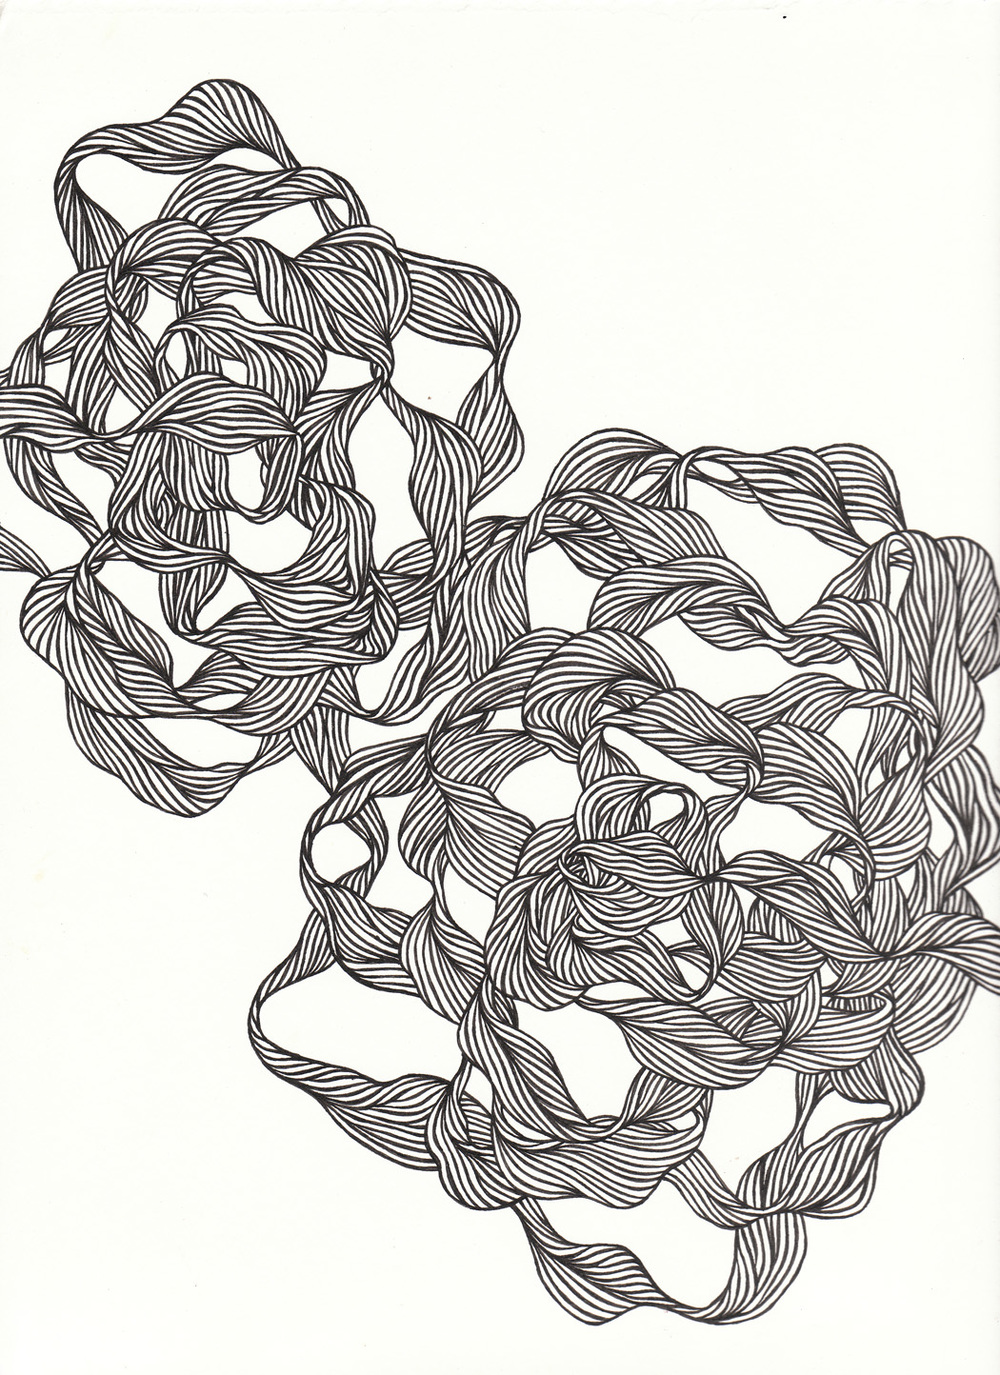 "Swirl, 9"" X 10"", ink on paper, 2009"